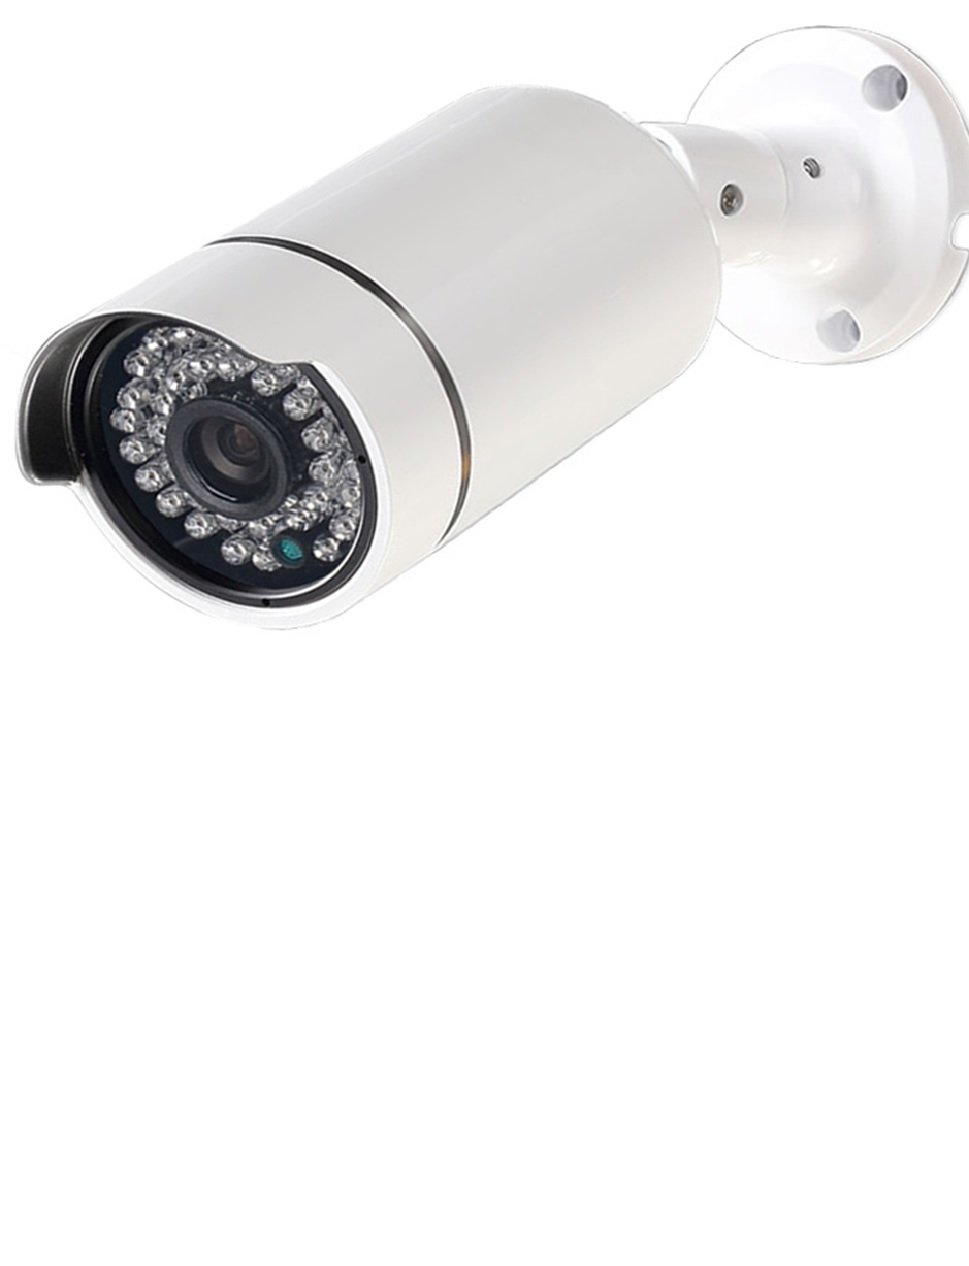 Amazon.com : EPOC EoC PoC IP Camera -2mp HD- Daisy Chain over Coax : Camera & Photo